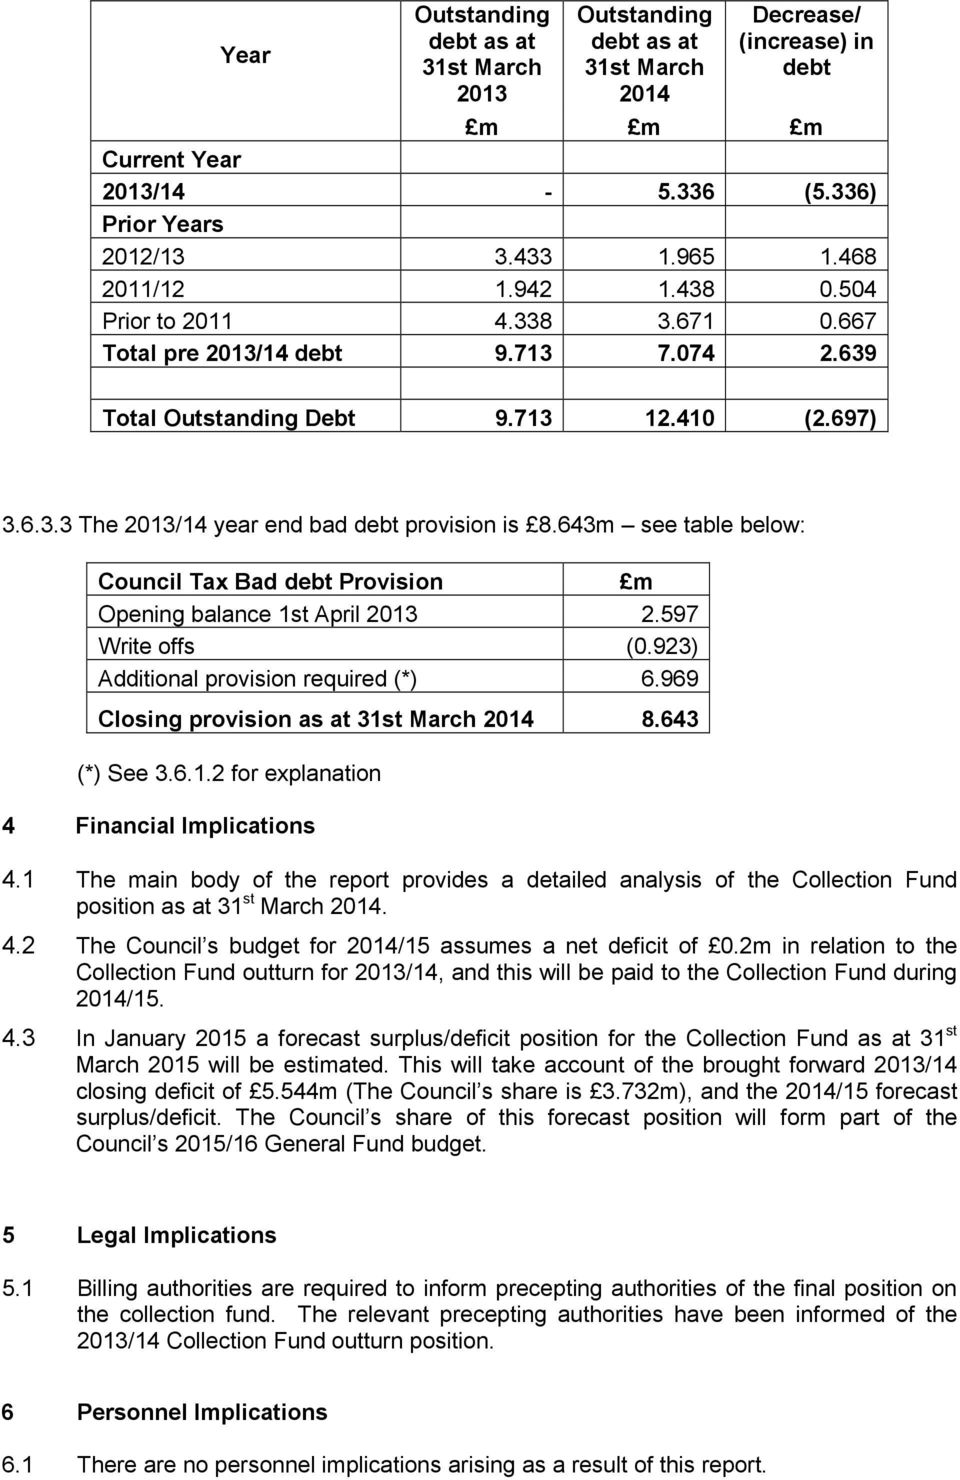 643m see table below: Council Tax Bad debt Provision m Opening balance 1st April 2013 2.597 Write offs (0.923) Additional provision required (*) 6.969 Closing provision as at 31st March 2014 8.